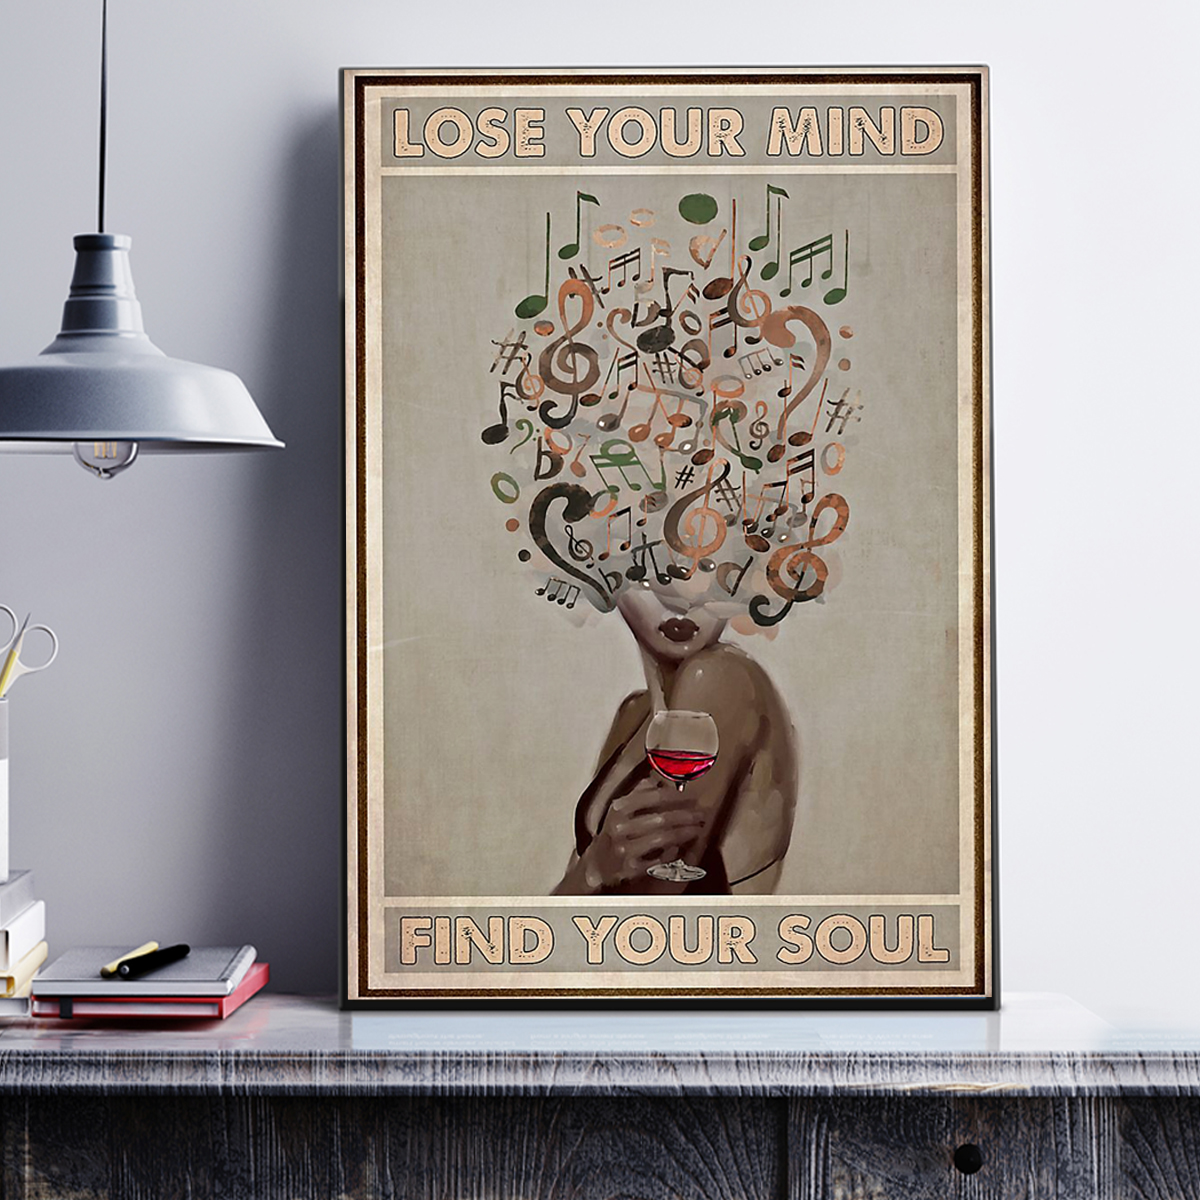 Vinyl and wine lose your mind find your soul poster A1